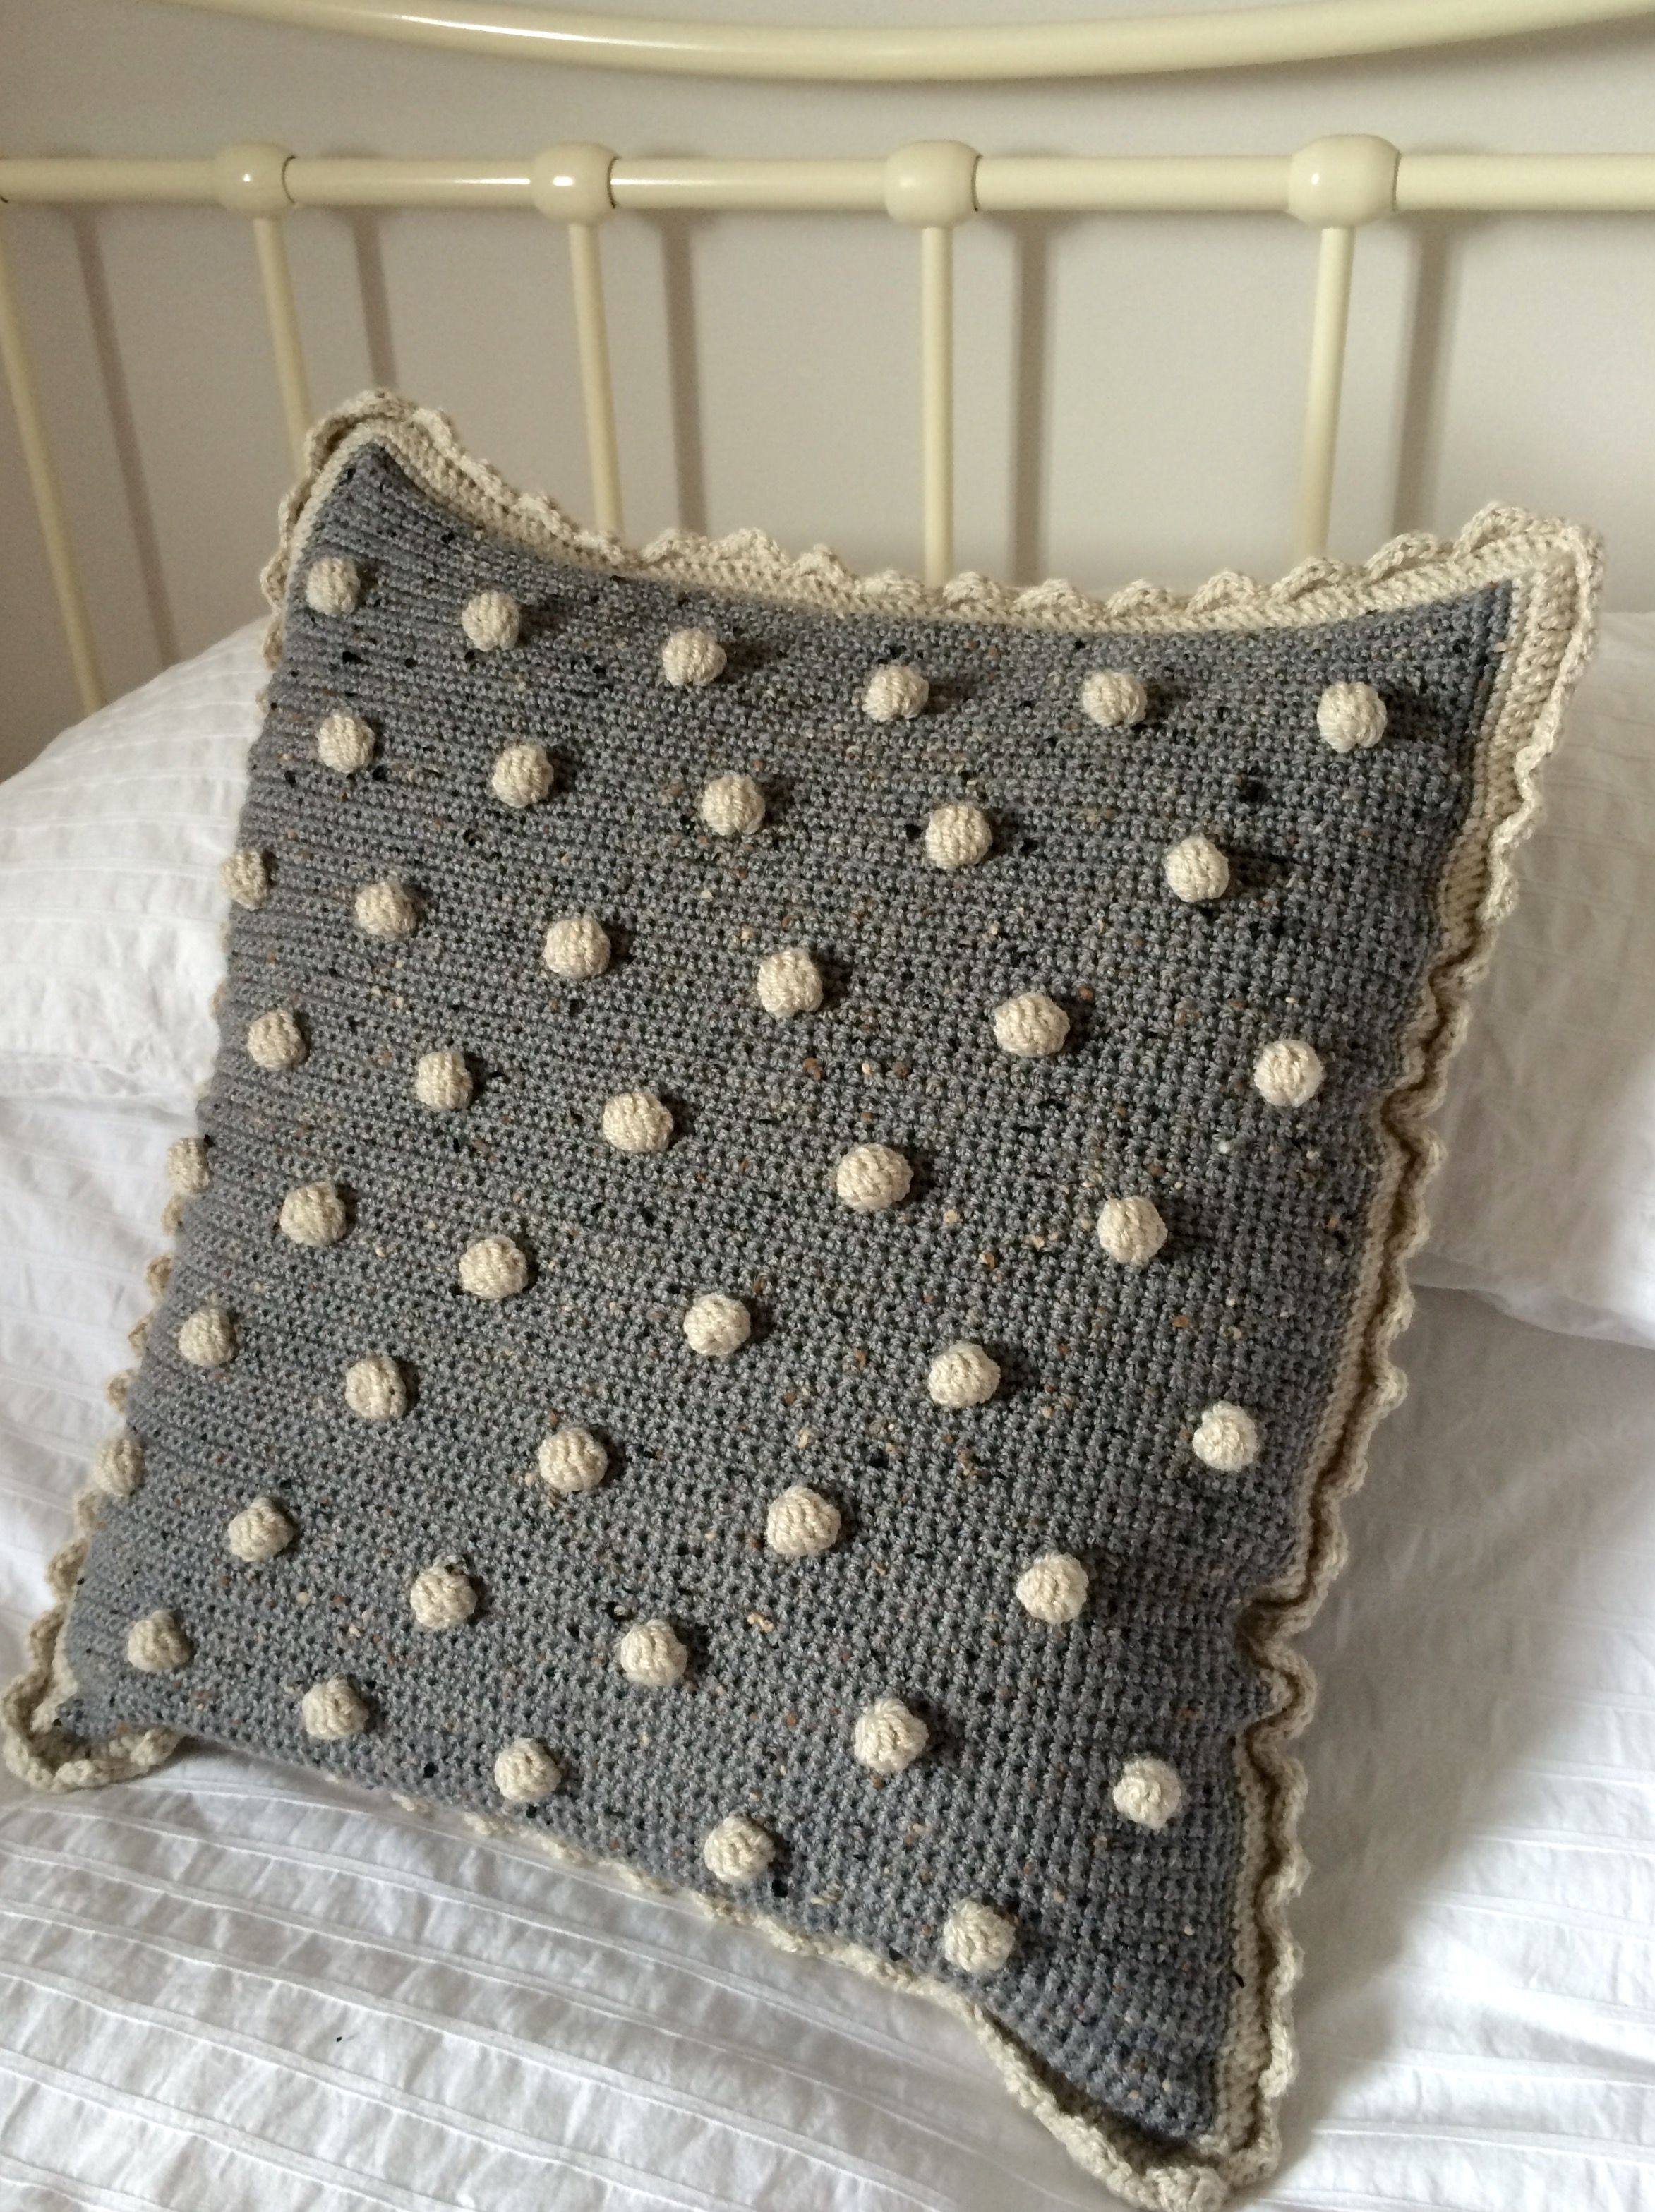 Crochet Club: Make a bobble cushion cover with a free pattern from KAte Eastw...